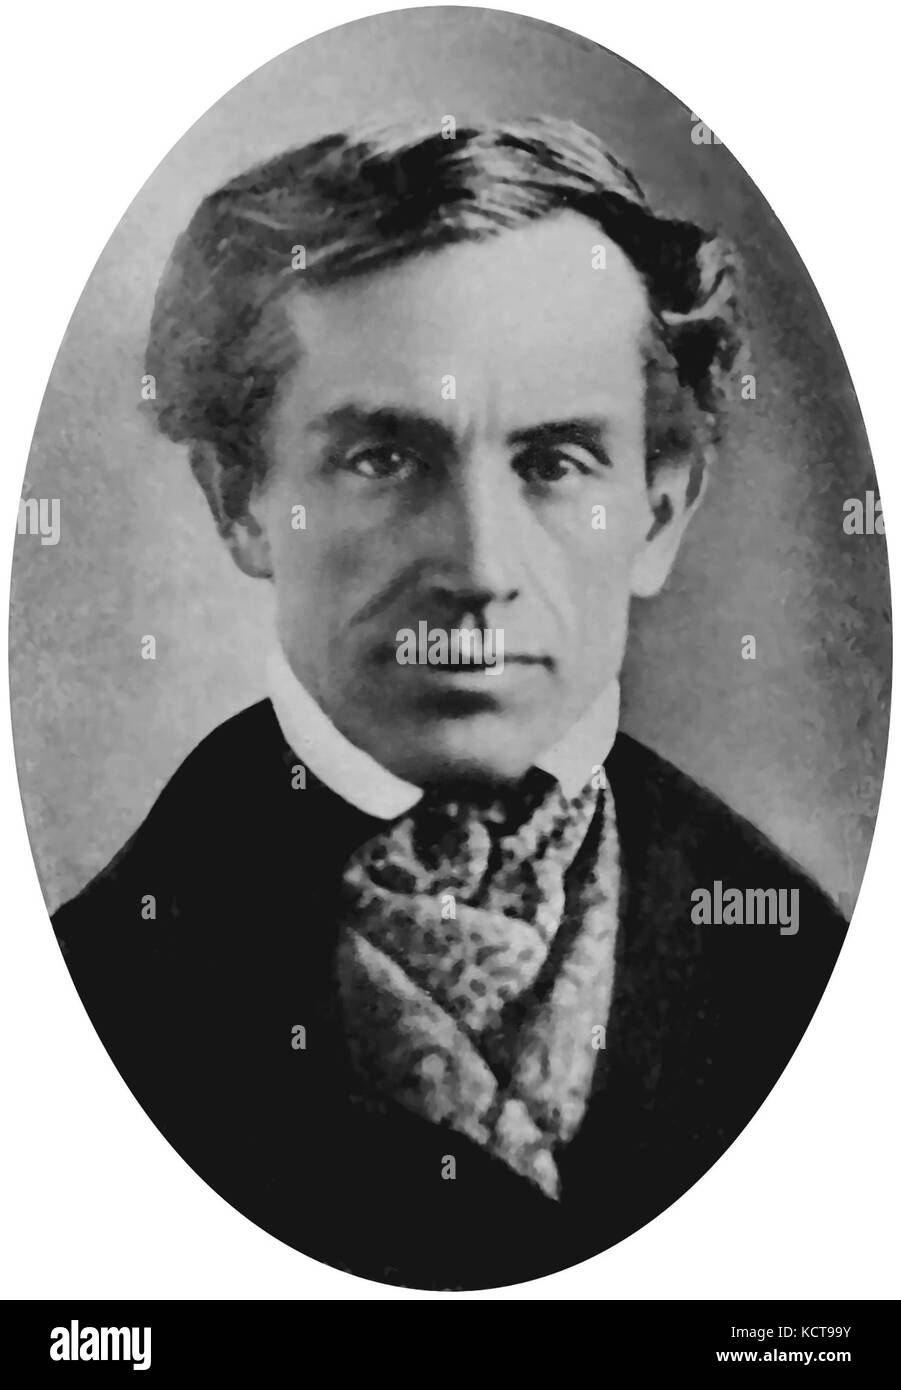 SAMUEL MORSE (1791-1872) American painter later was co-inventor of the Morse Code. Photo about 1840 - Stock Image